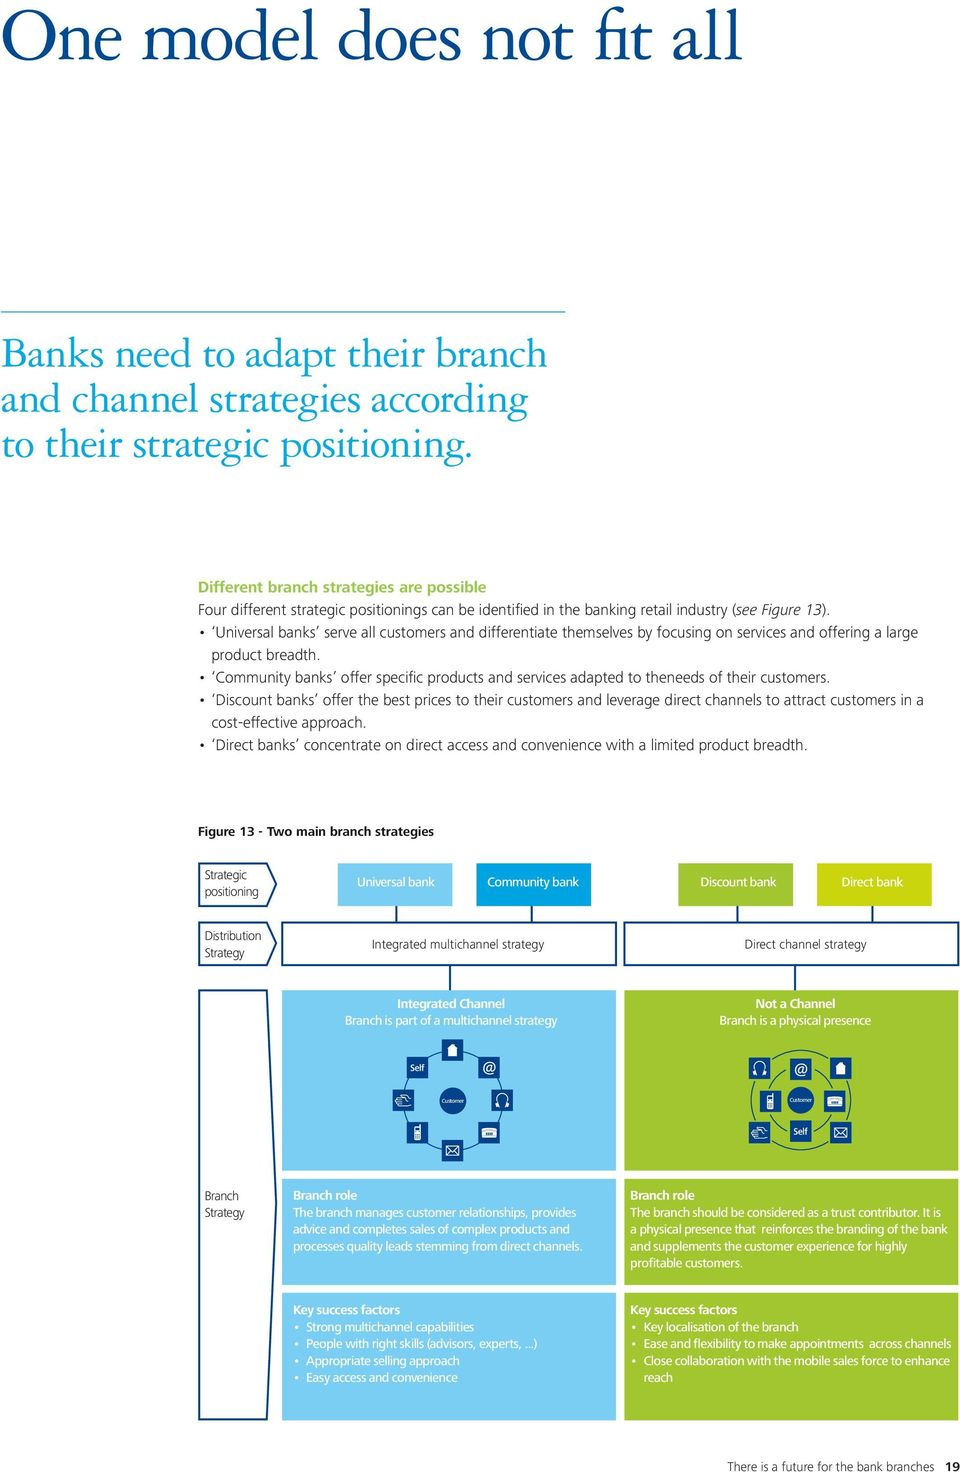 Universal banks serve all customers and differentiate themselves by focusing on services and offering a large product breadth.